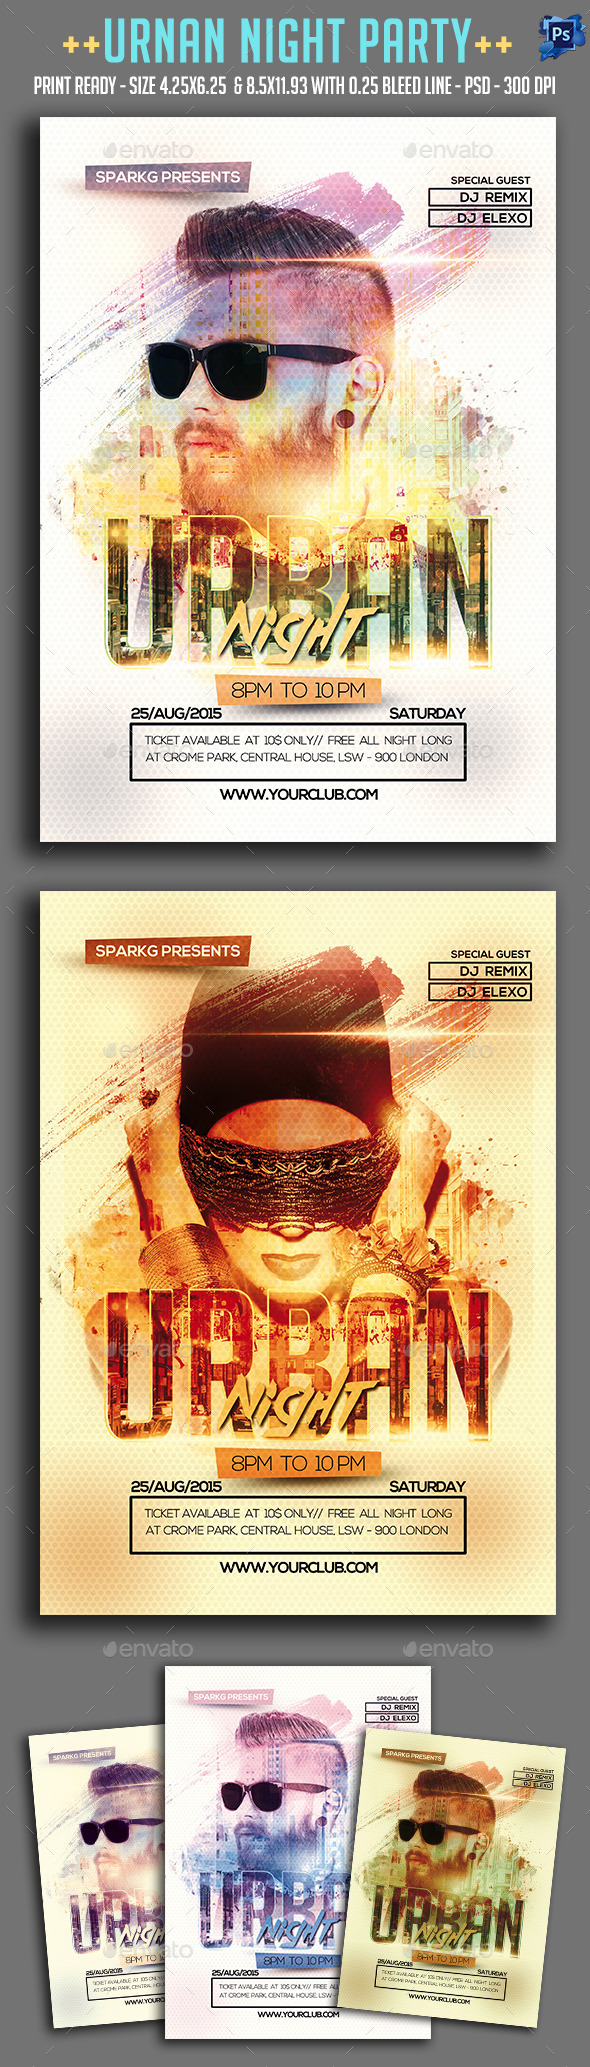 Urban Night Party Flyer - Clubs & Parties Events